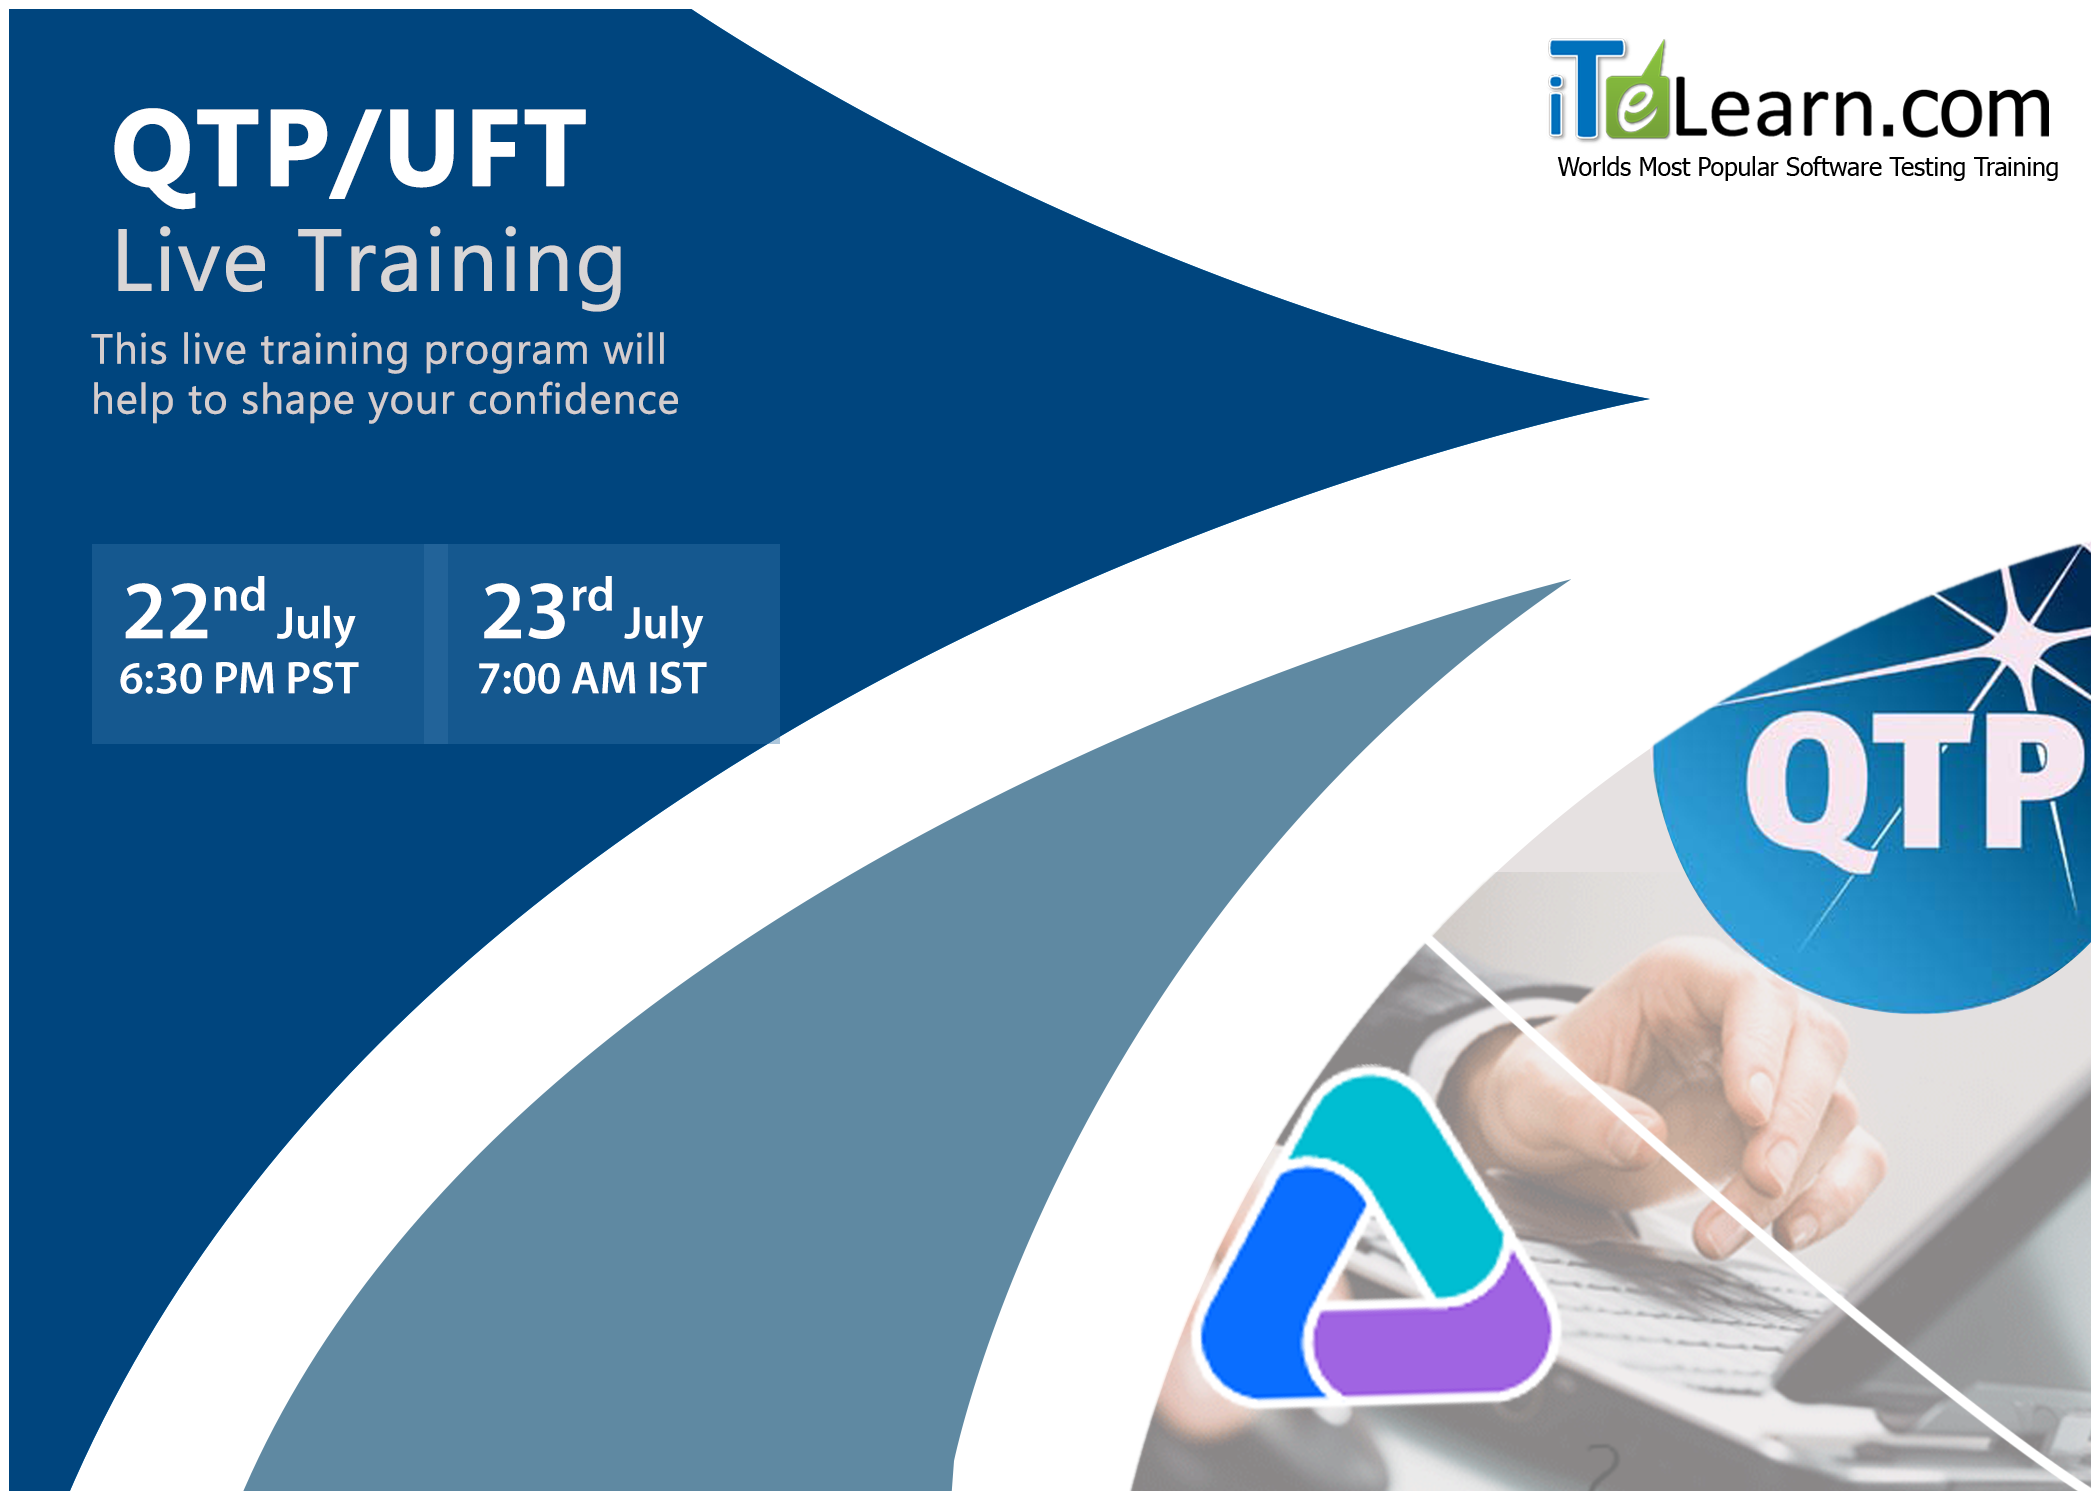 QTP/UFT #LiveTraining -------------------------------- Visit:http://www.itelearn.com/events/qtpuft-live/  #QTP/ #UFT Live Training #FreeOrientationSession will be conducted on 22nd July at 6.30 PM Pacific.For Indian Pricing and Payment details mail us at learn@itelearn.com, or reach us at +91-837-4323-742 (INDIA)